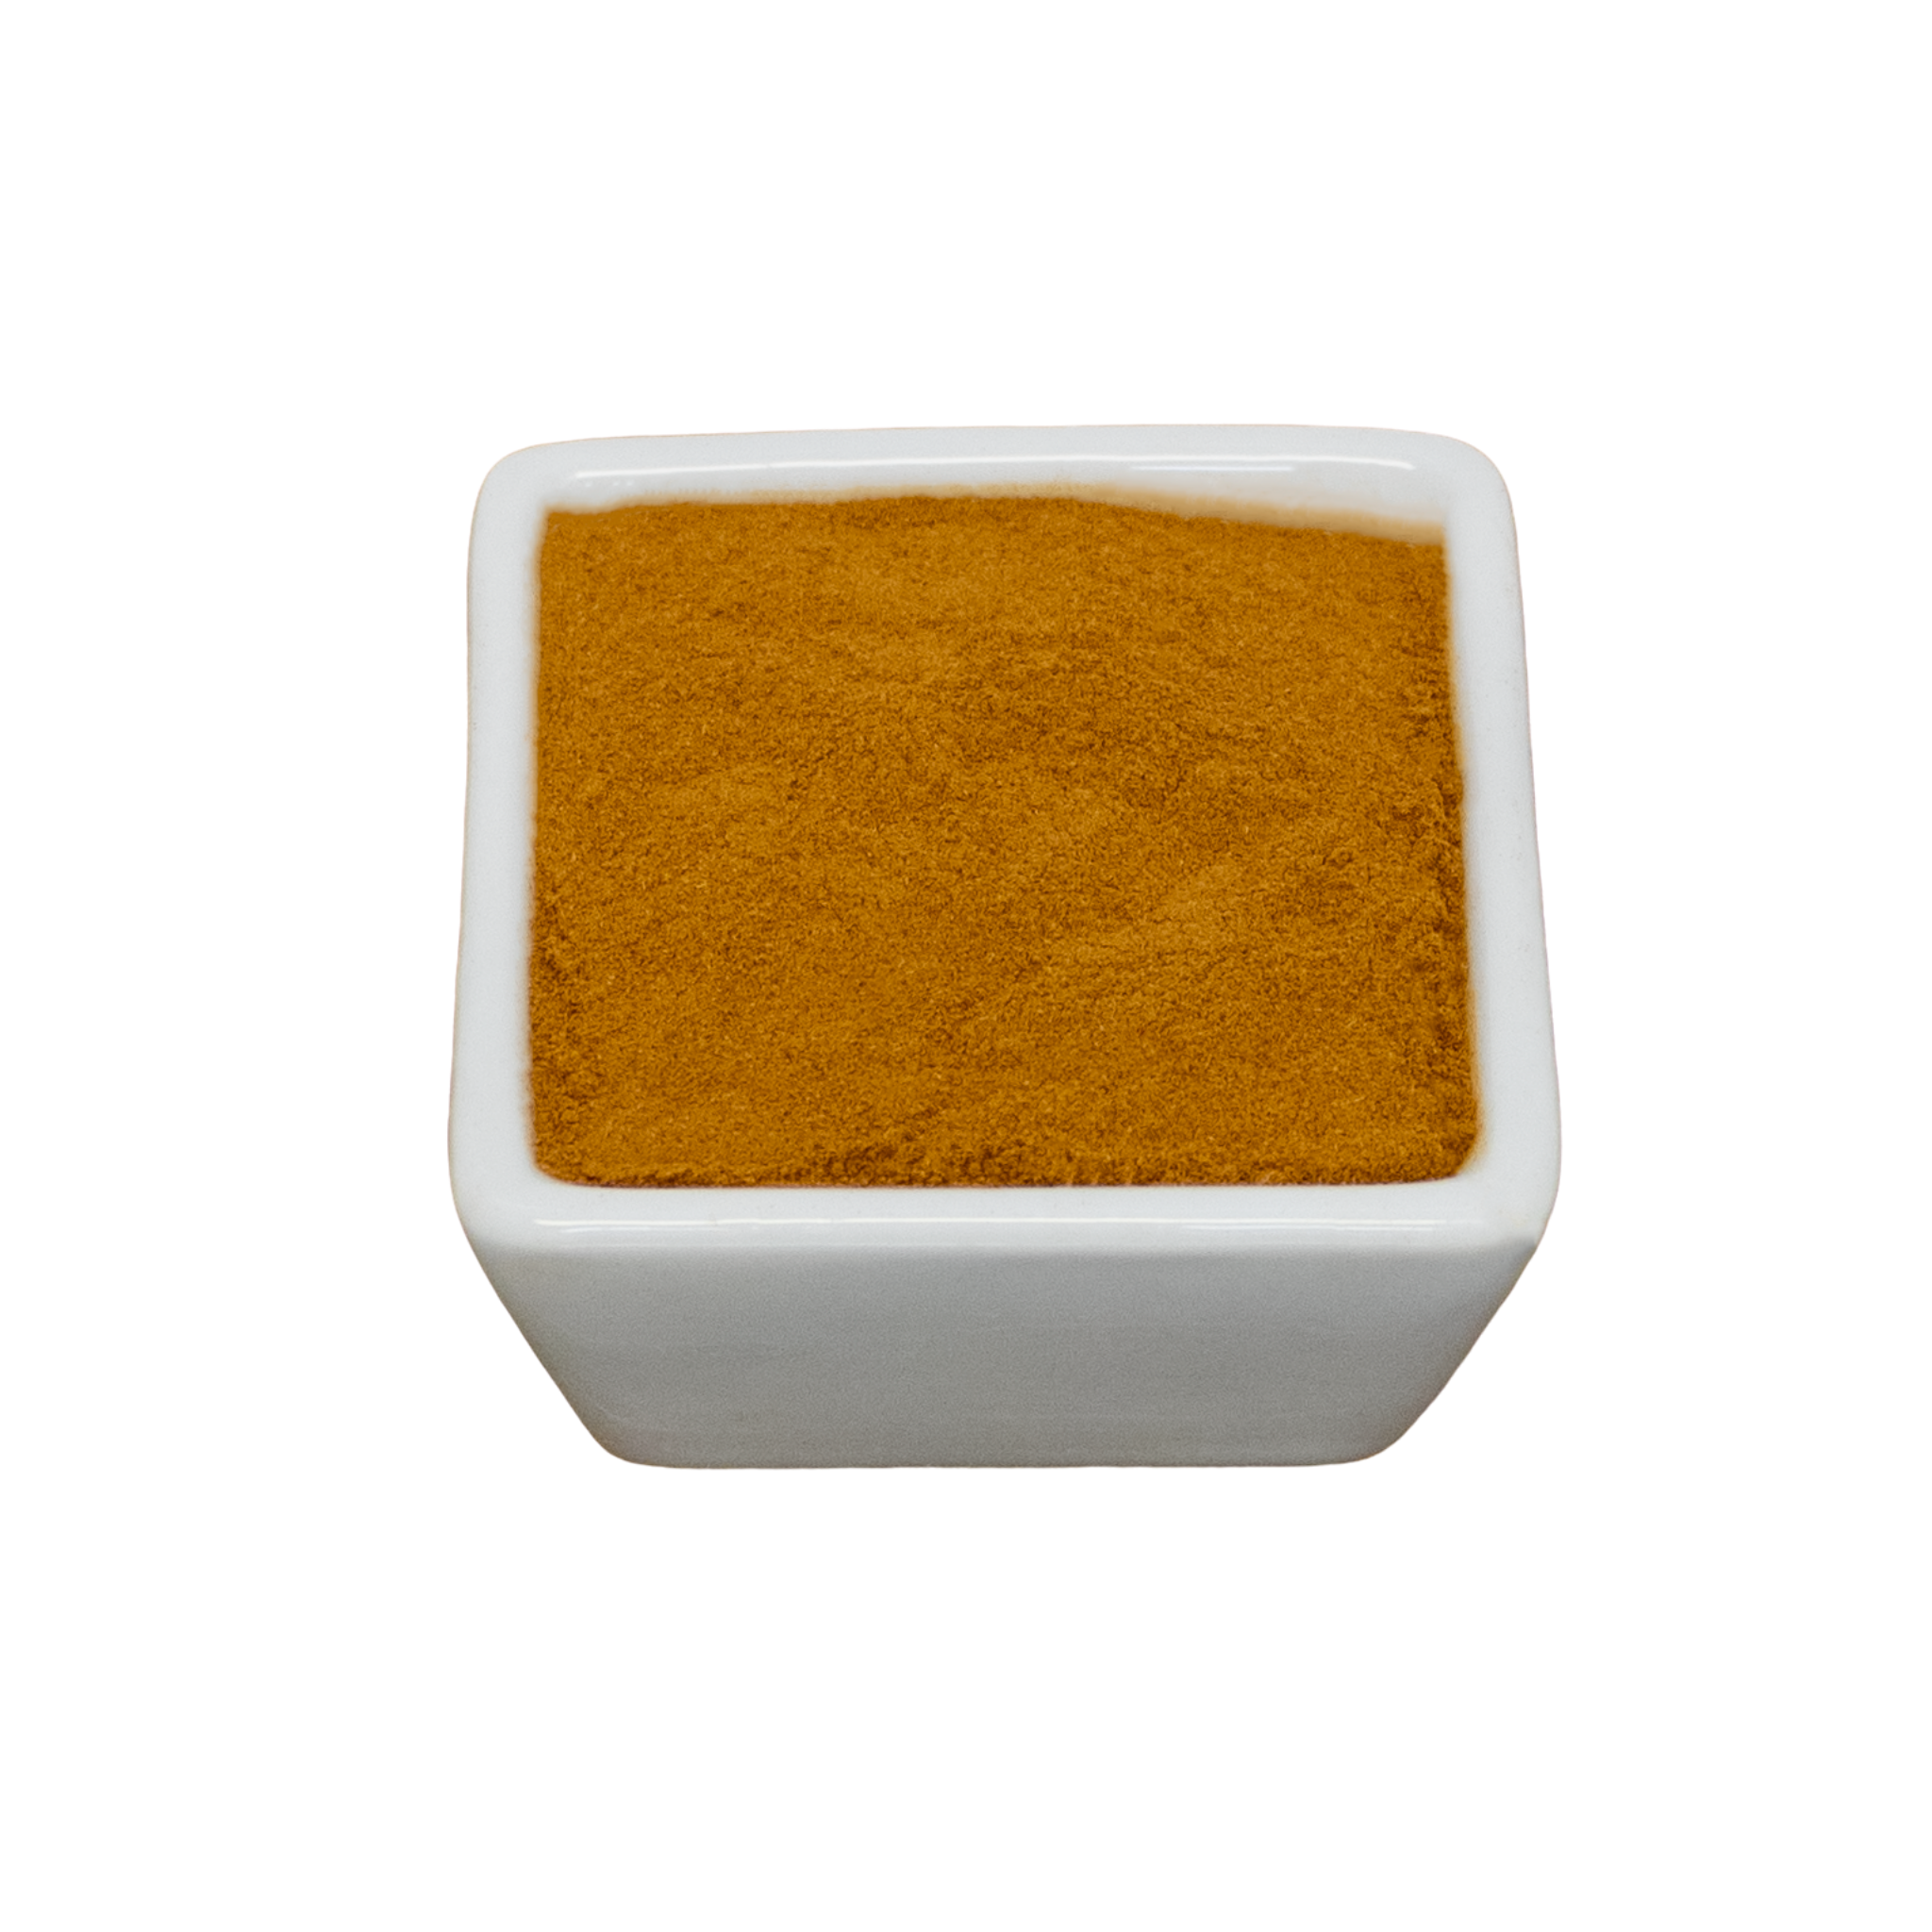 Organic Cinnamon, Ceylon - Ground